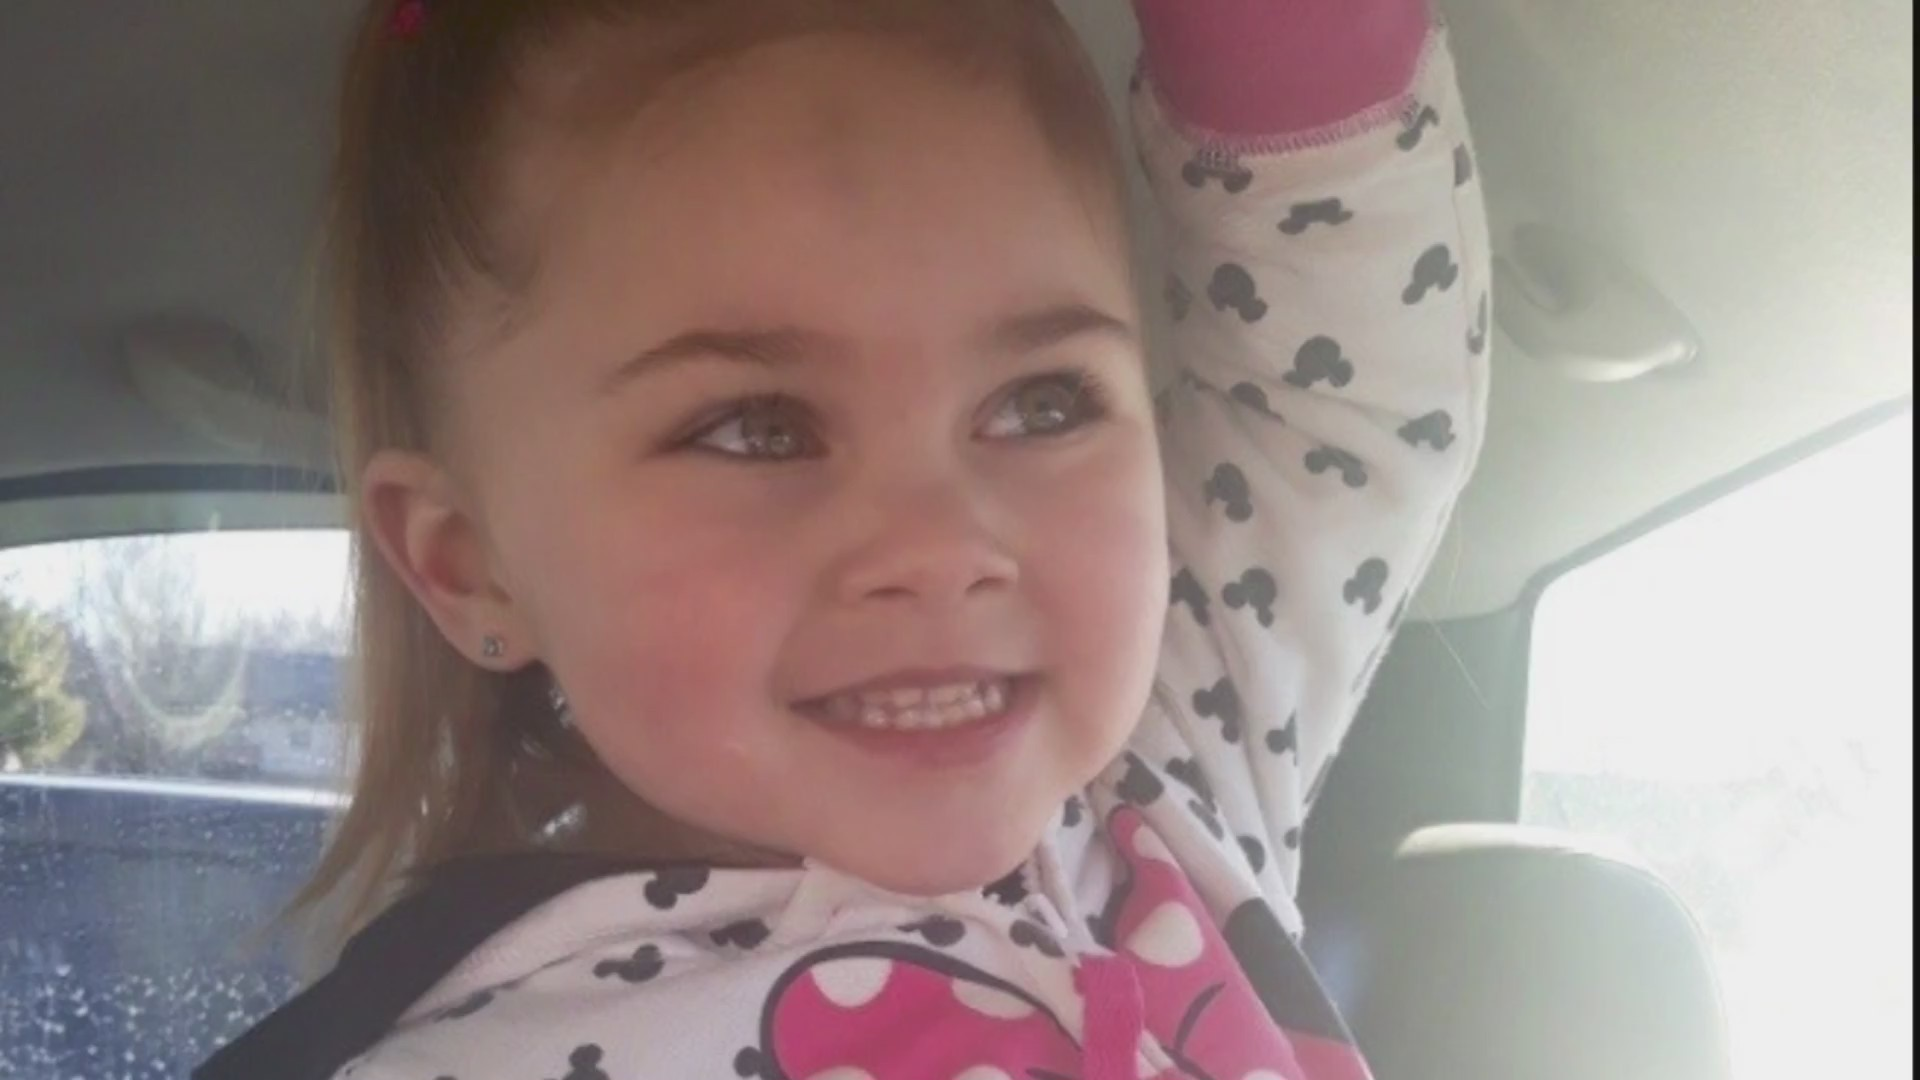 3-year-old Olivia Jansen was found dead in Kansas City, Kansas on Friday, July 10. Her father and the father's girlfriend are charged with murder in her killing.